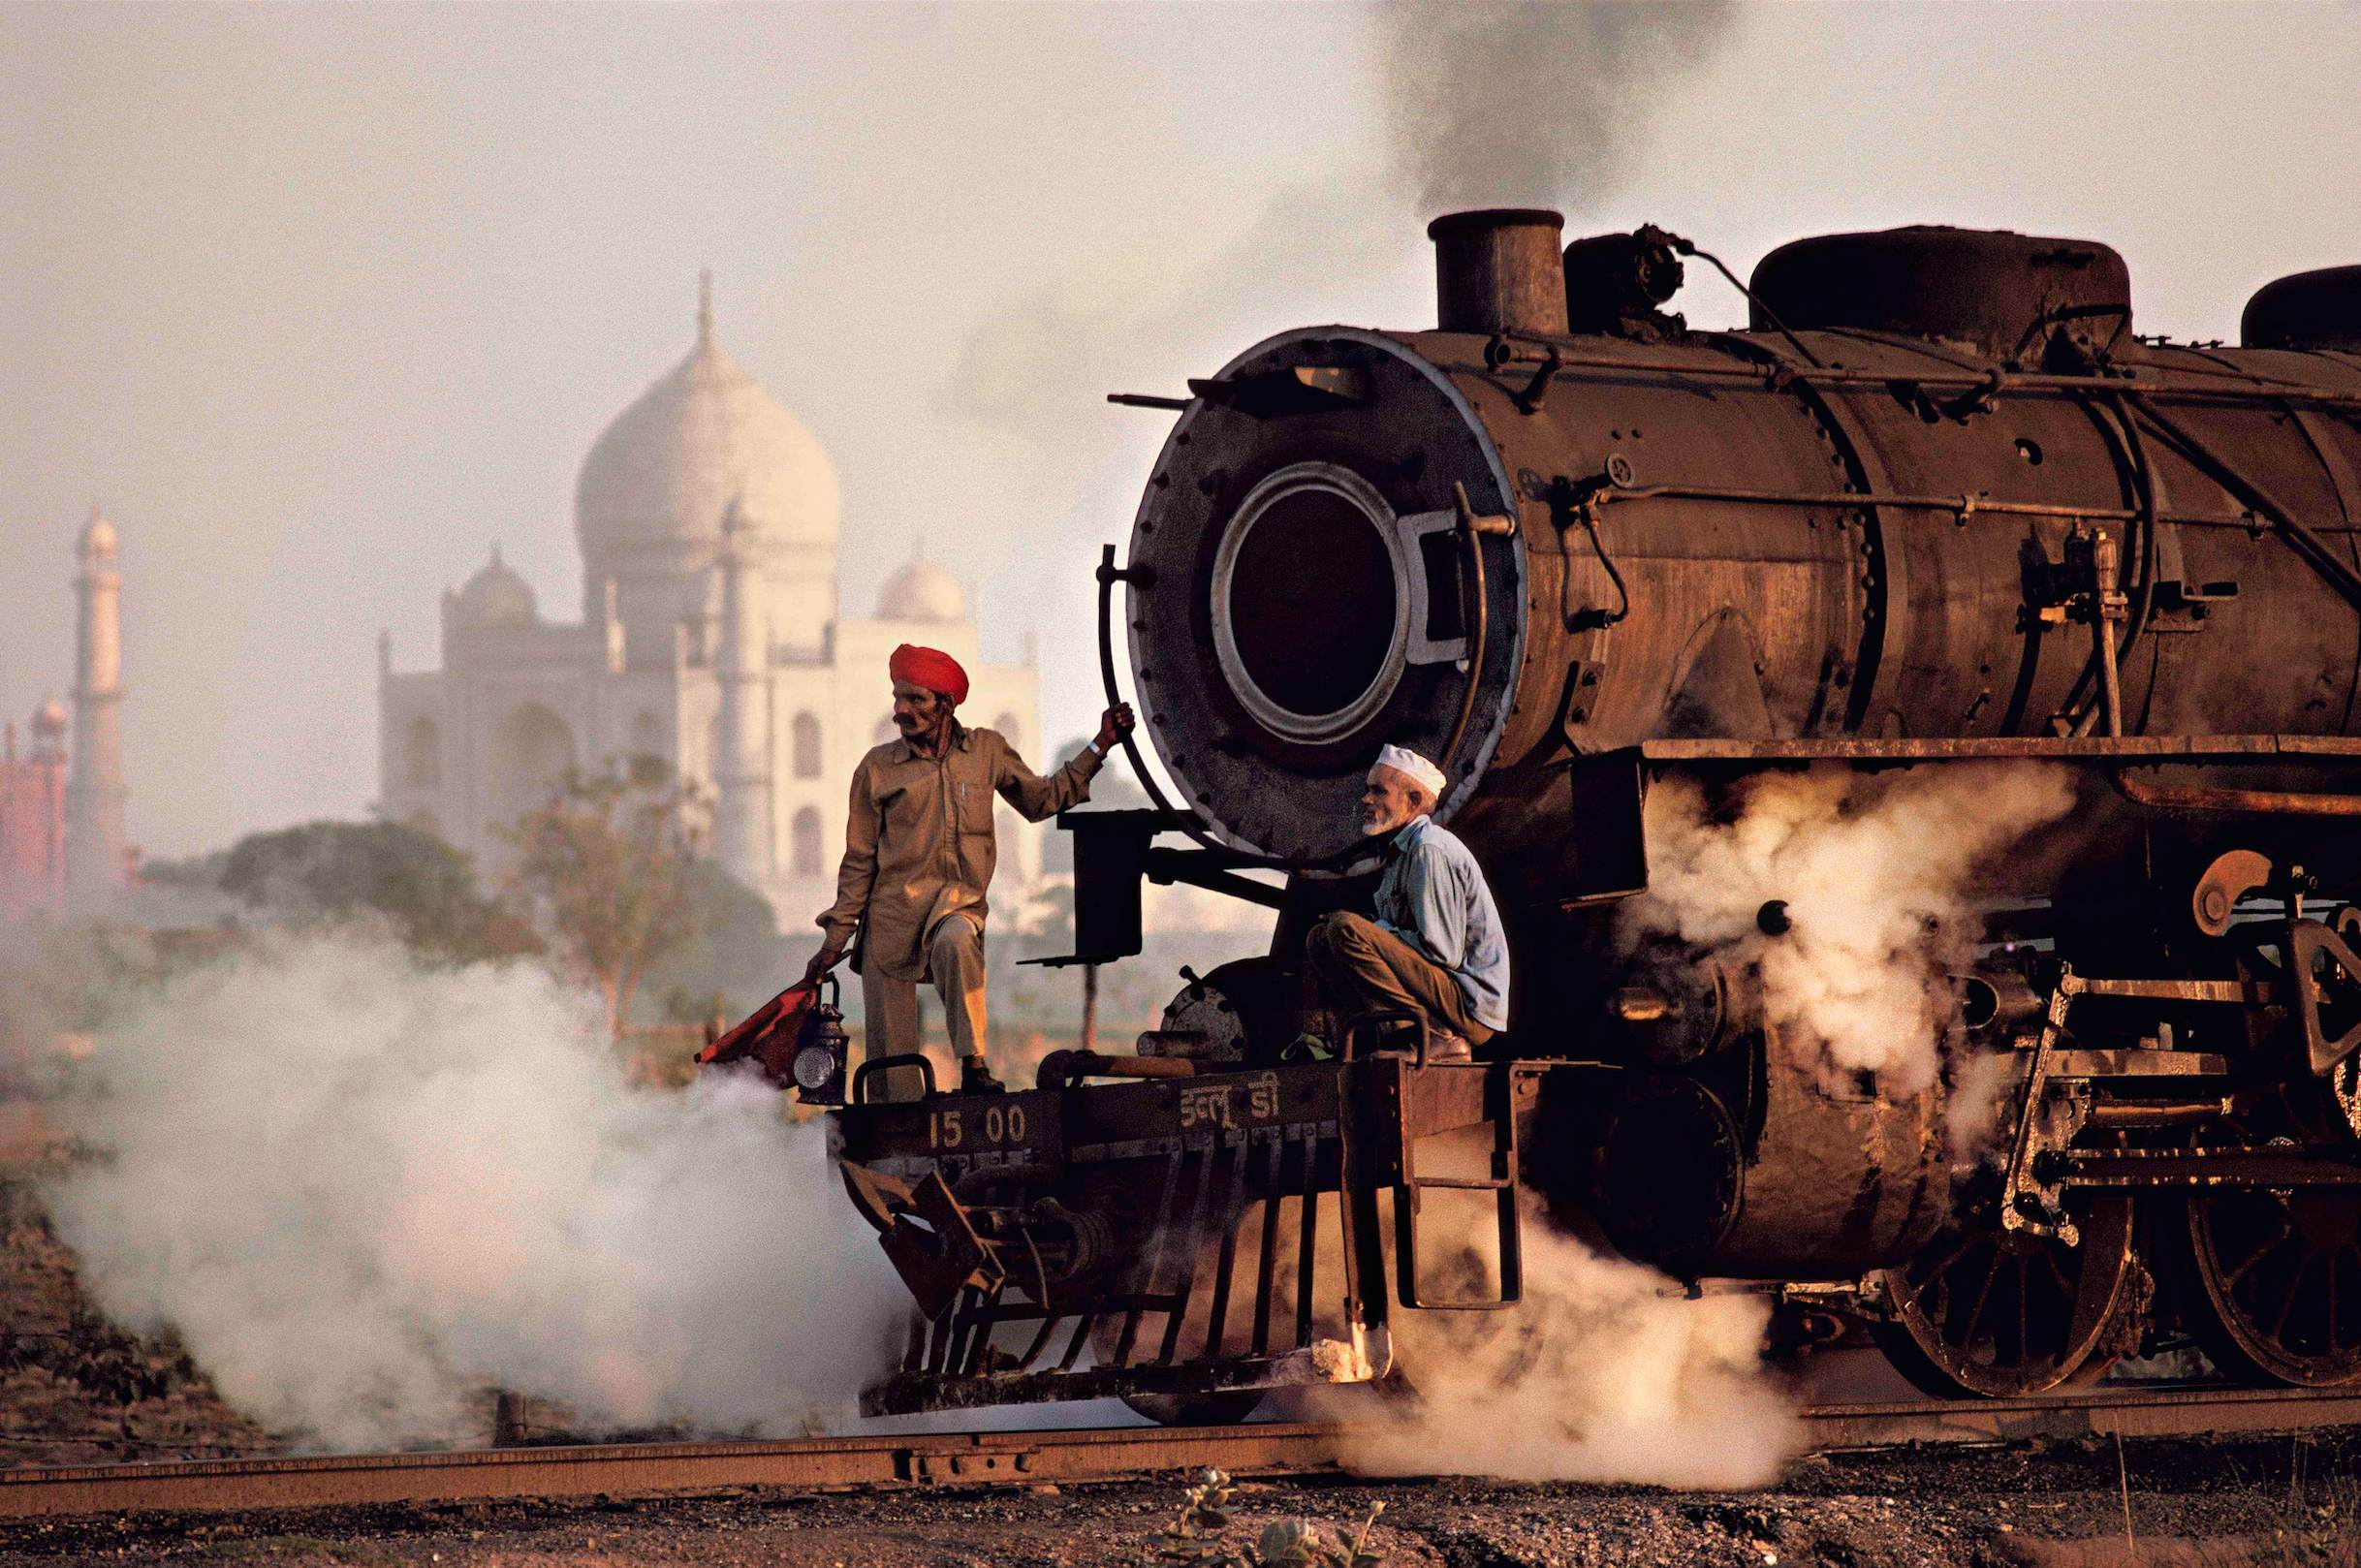 Inde, 1983 - Photo : Steve McCurry